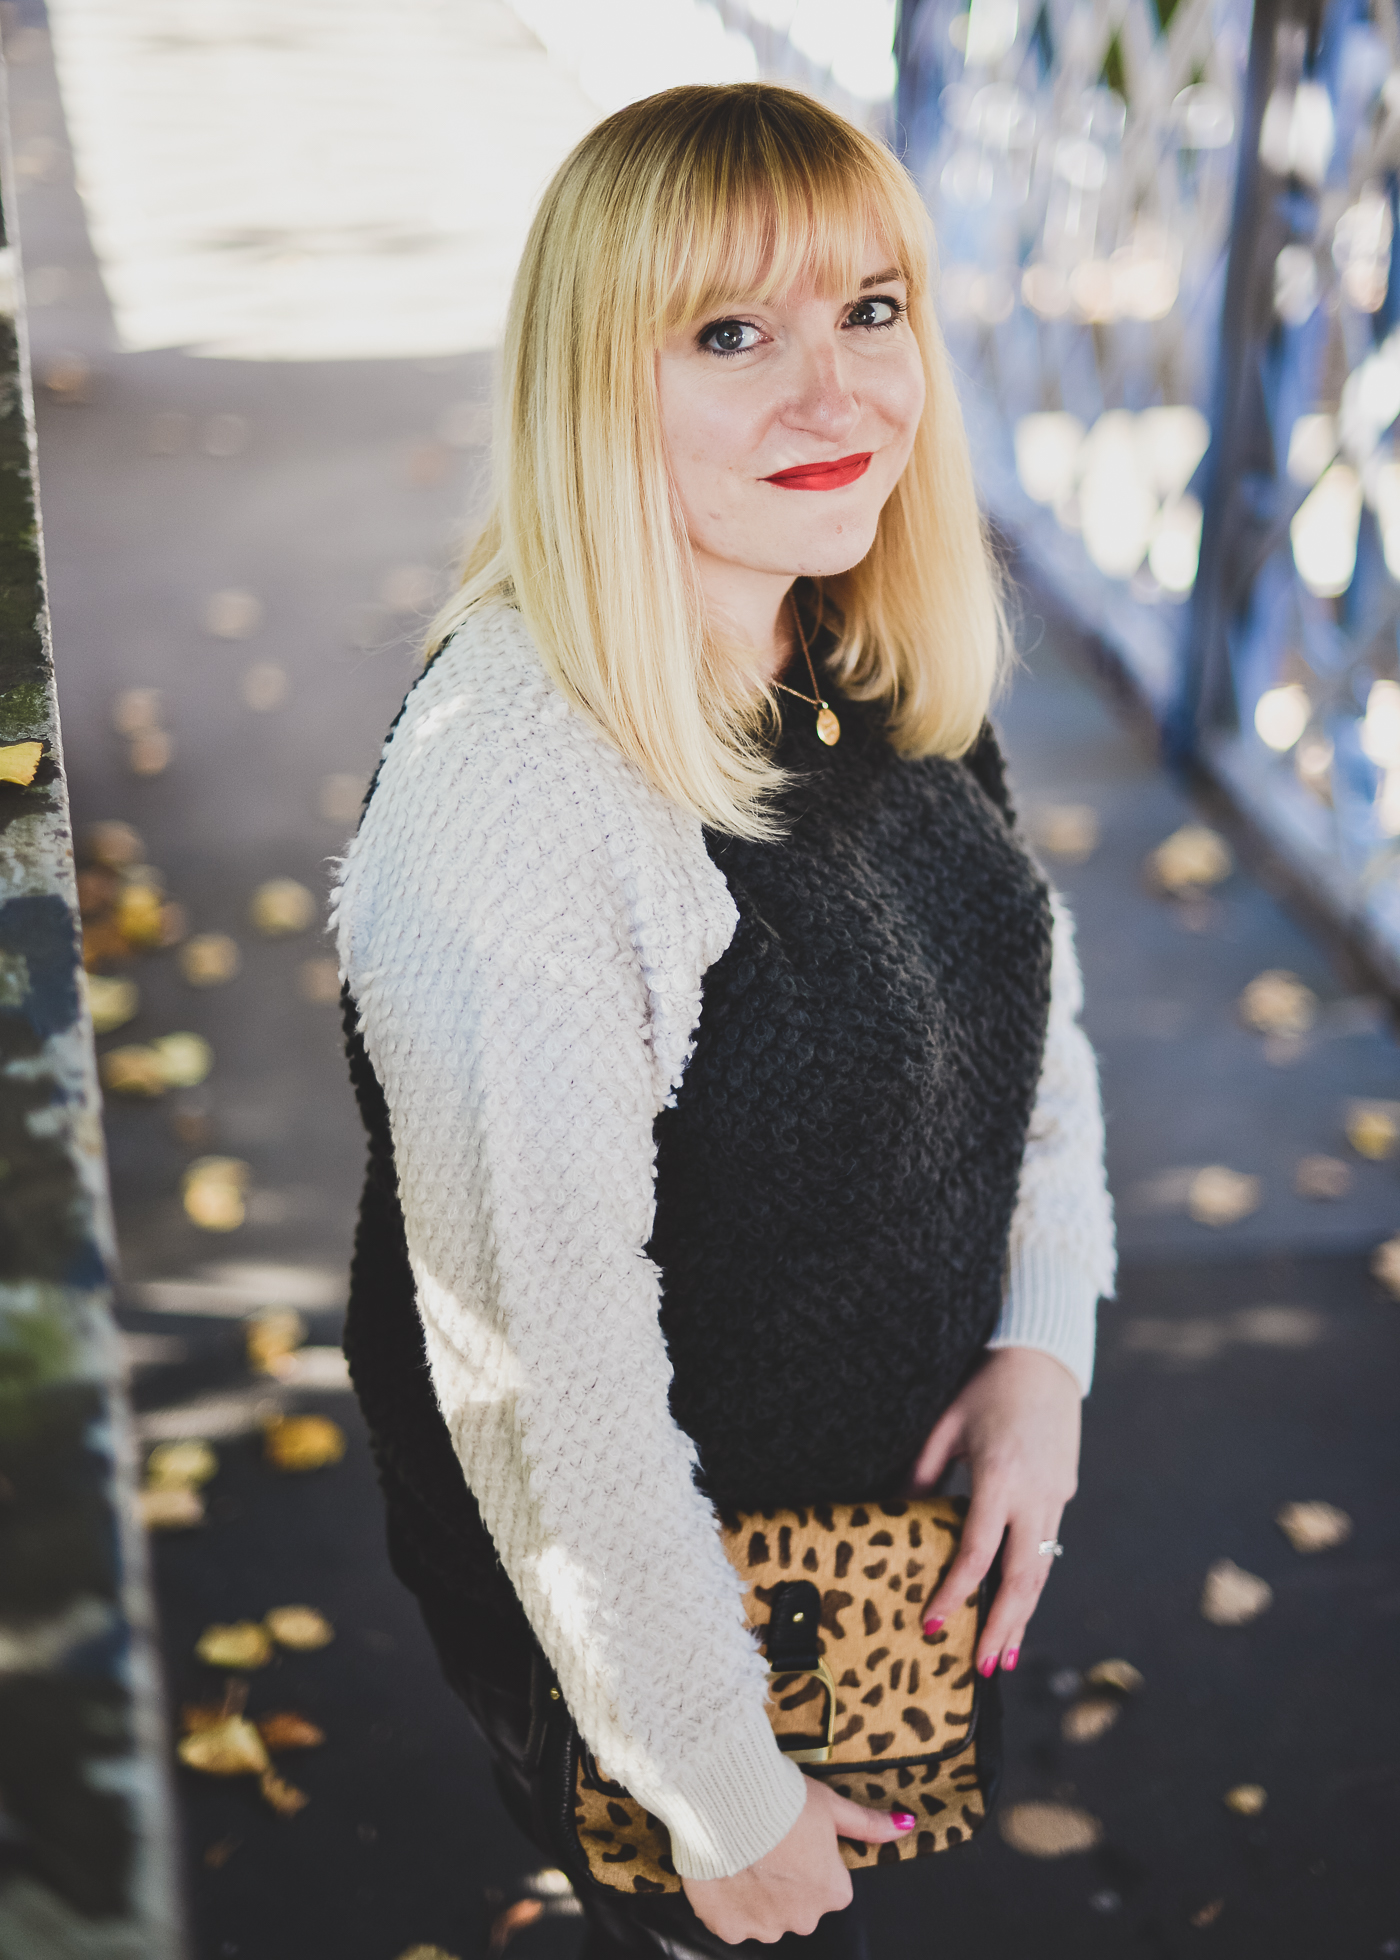 Alison Perry, blogger and editor